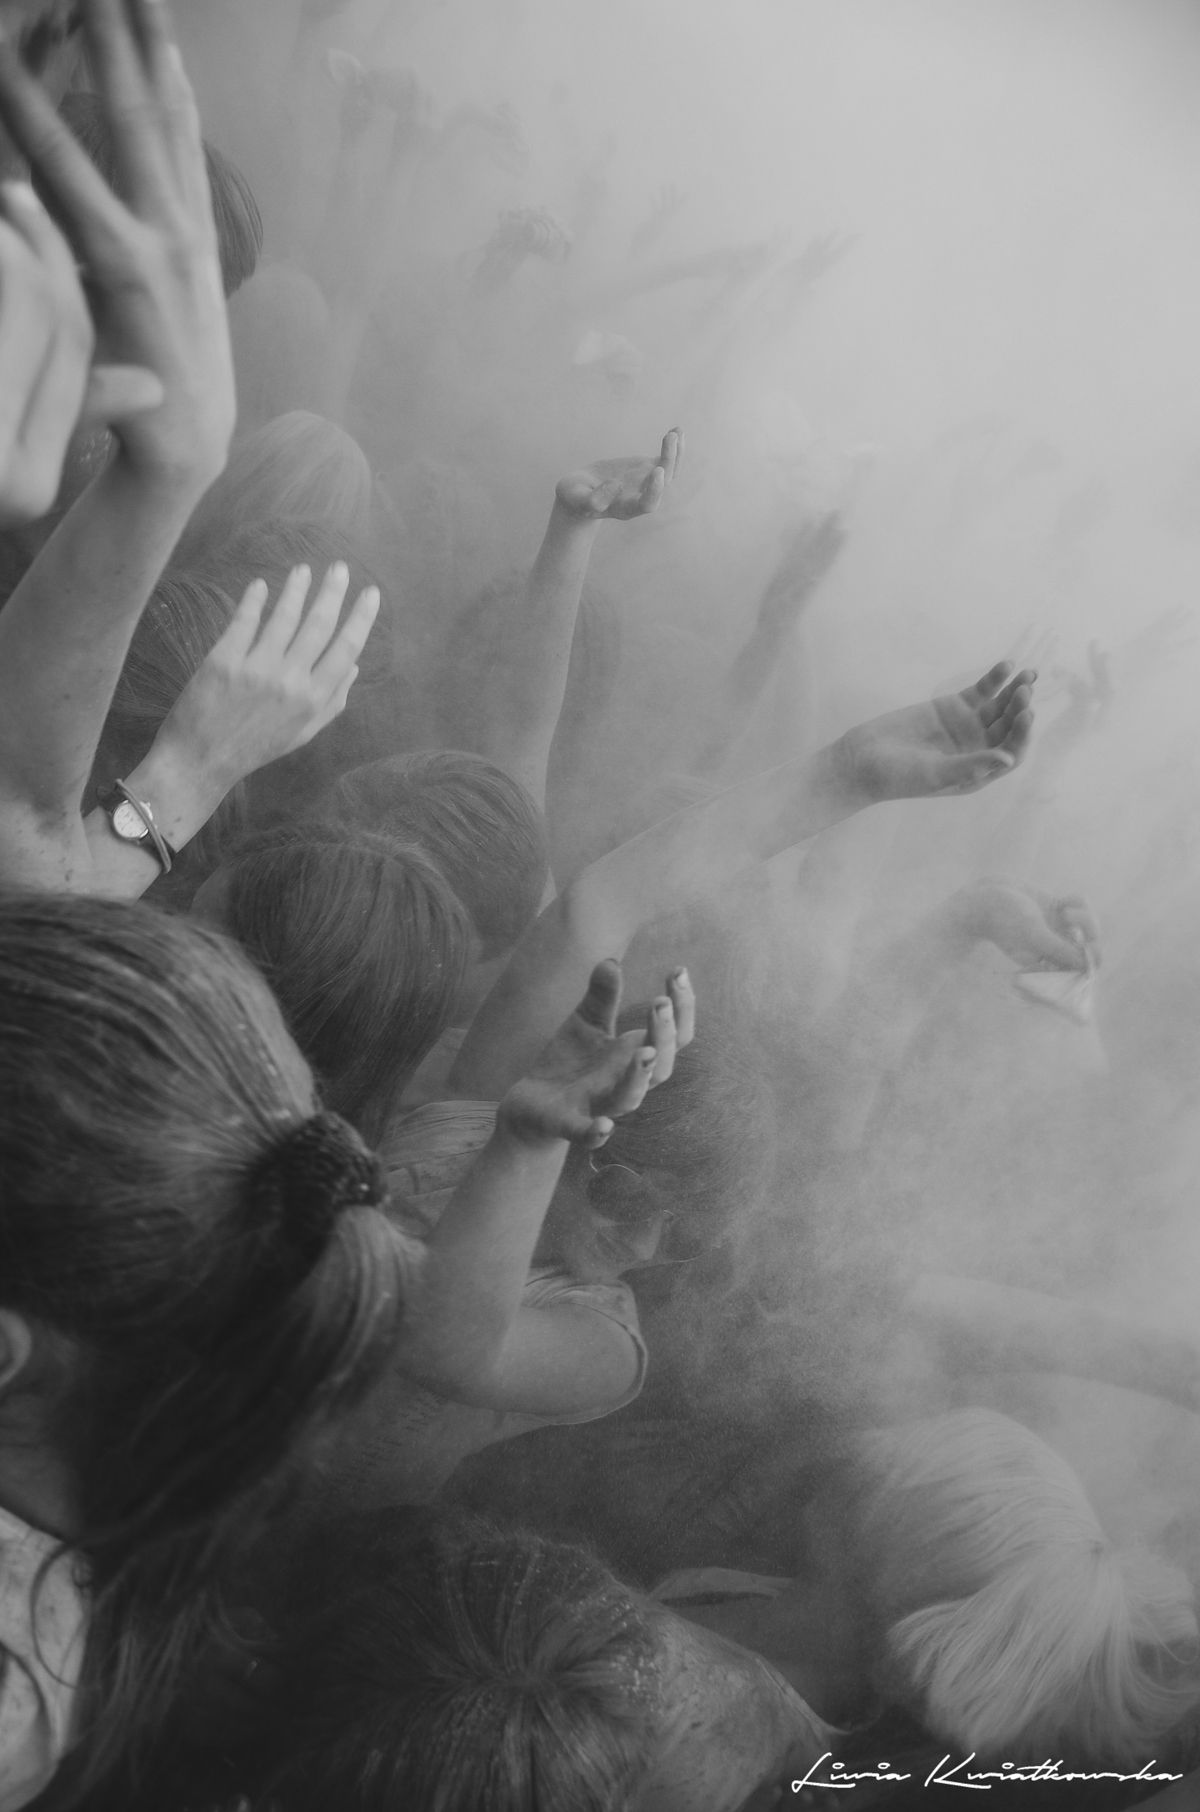 #holi #photography #blackandwhite #people #crowd #festiwal kolorów #hands